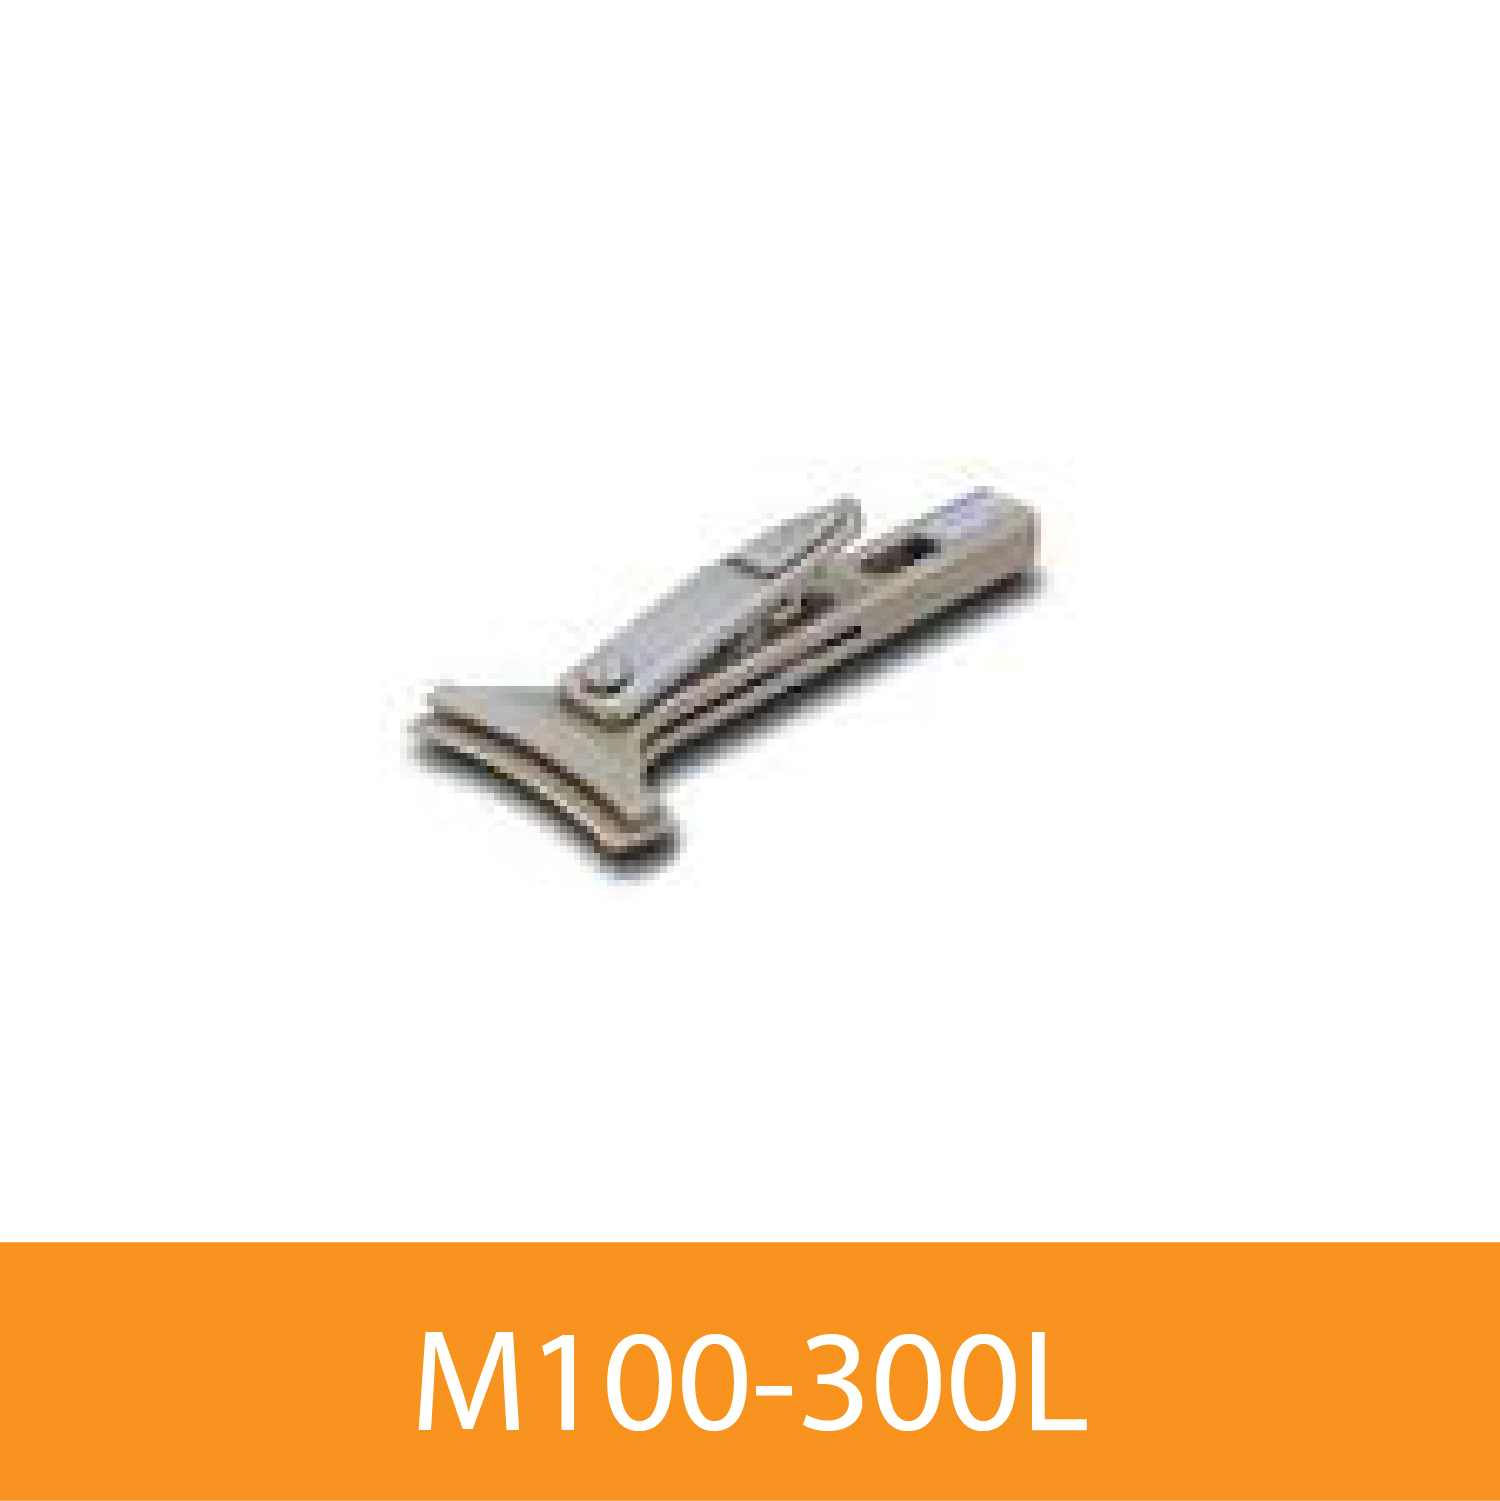 Wafer Tweezer (M100-300L)